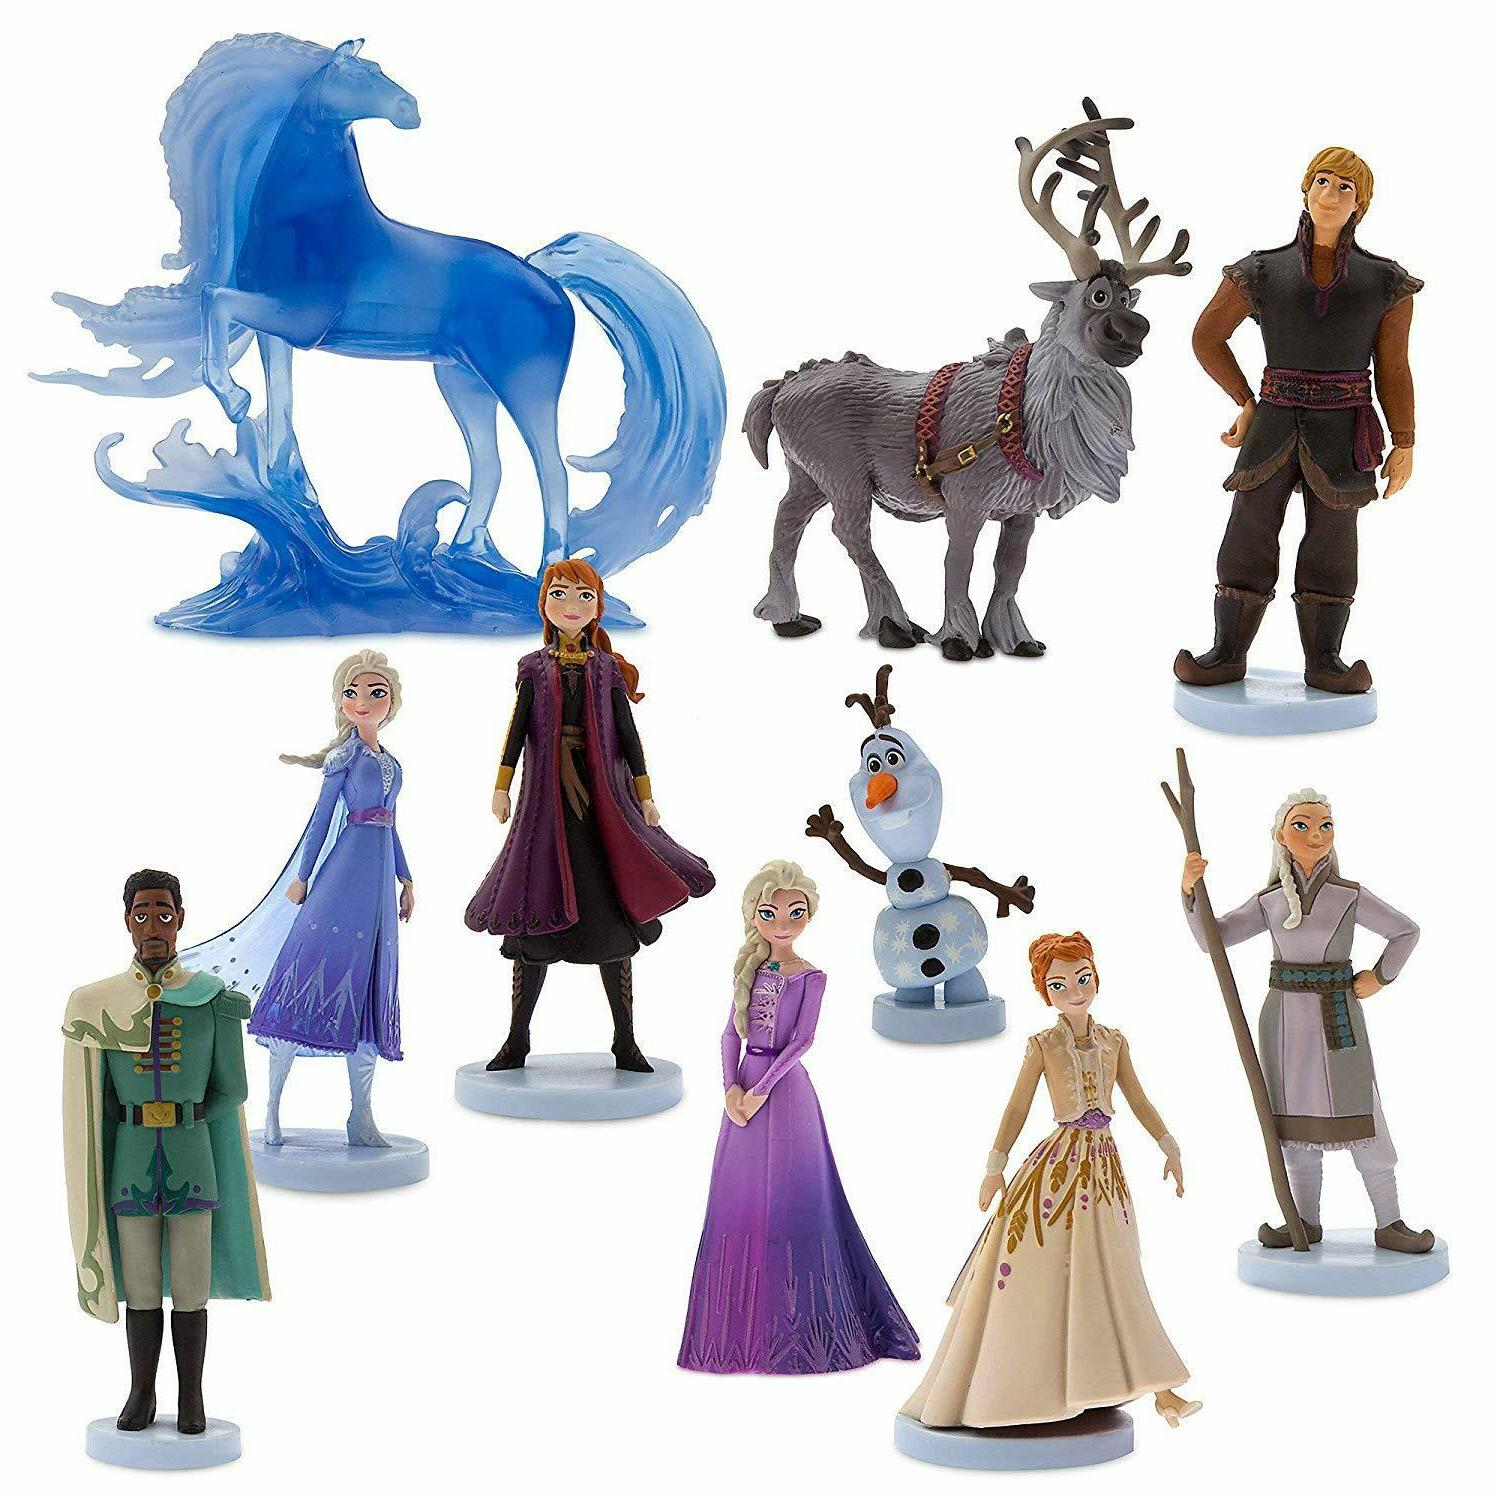 free shipping new frozen 2 deluxe figure